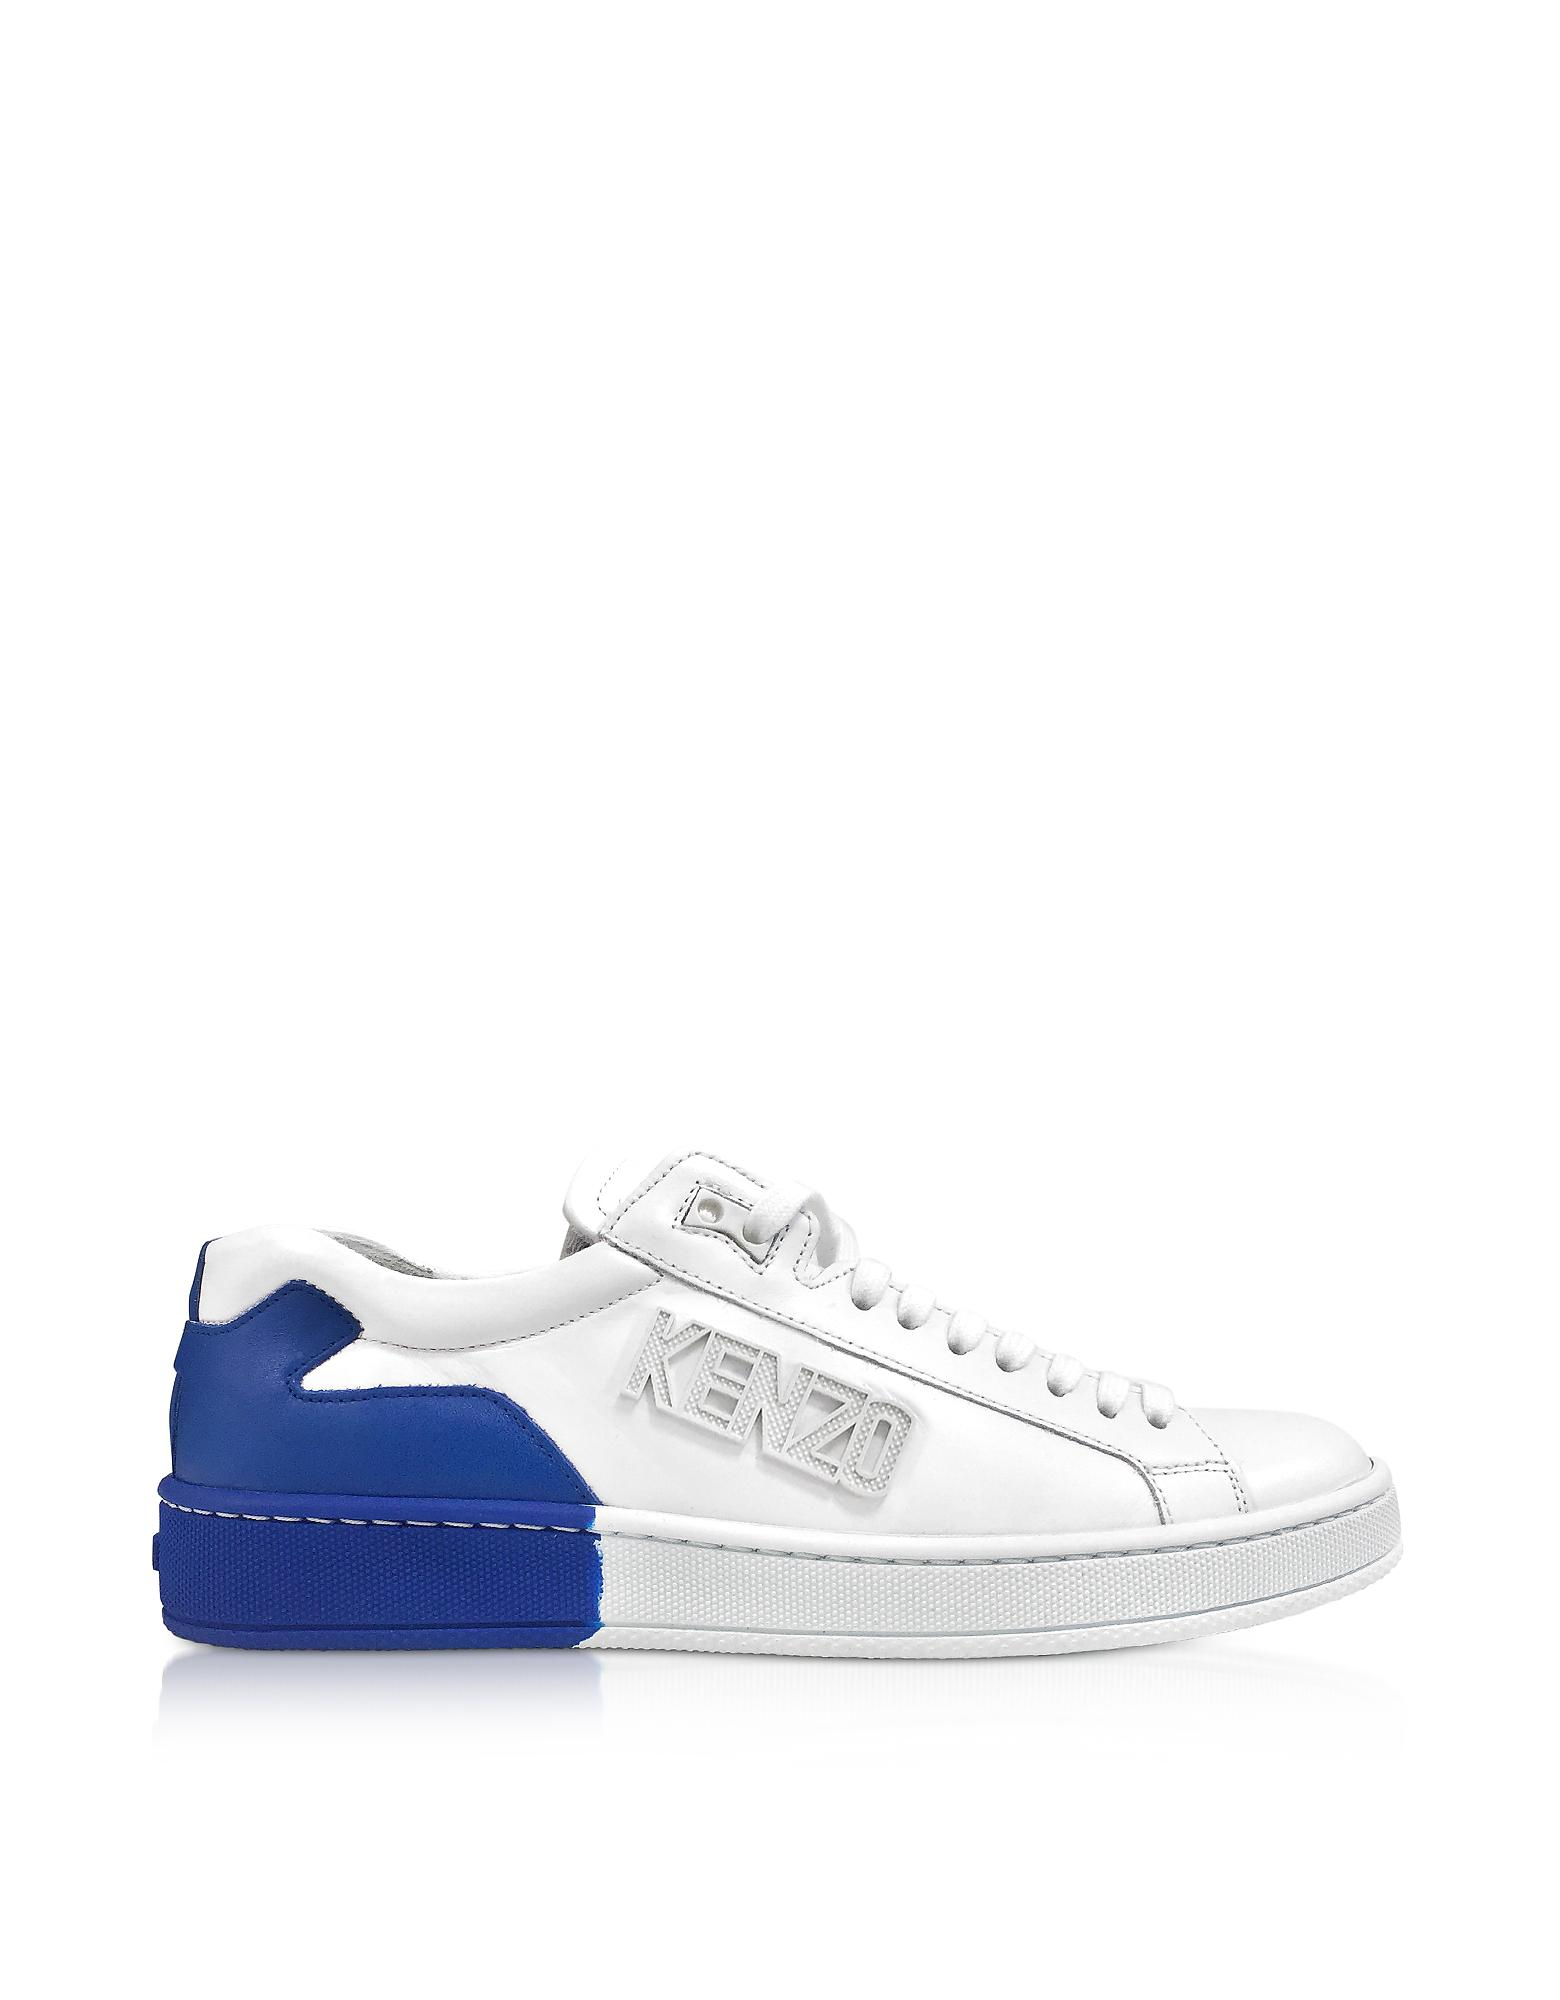 8c0ff0e86c KENZO White And French Blue Tennix Sneakers in White - Lyst